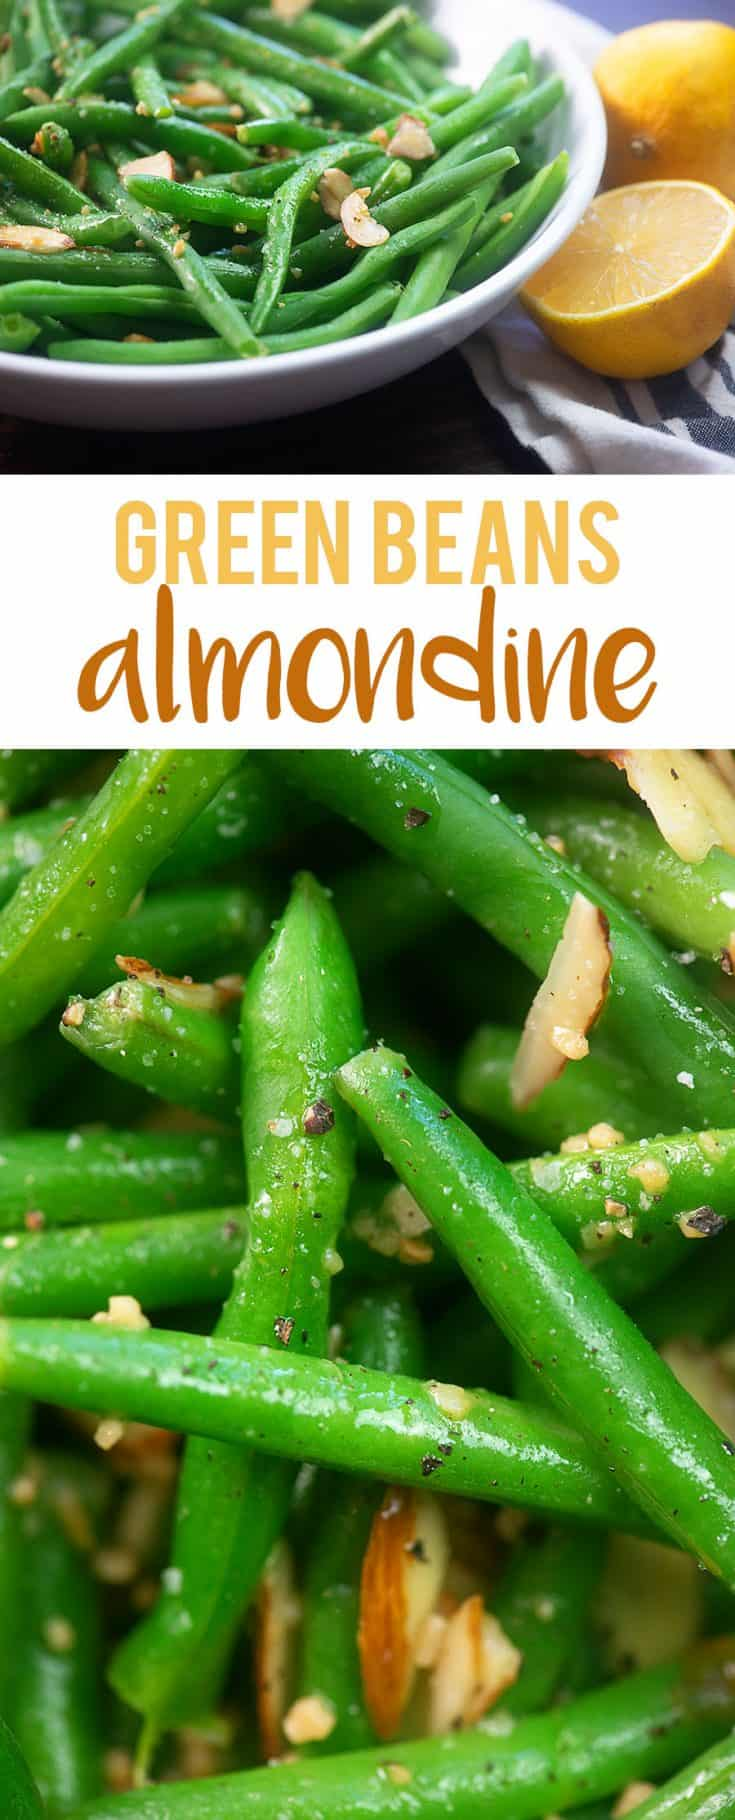 Low carb green beans almondine - fresh green beans cooked topped with a buttery lemon almond sauce! #greenbeans #lowcarb #keto #recipe